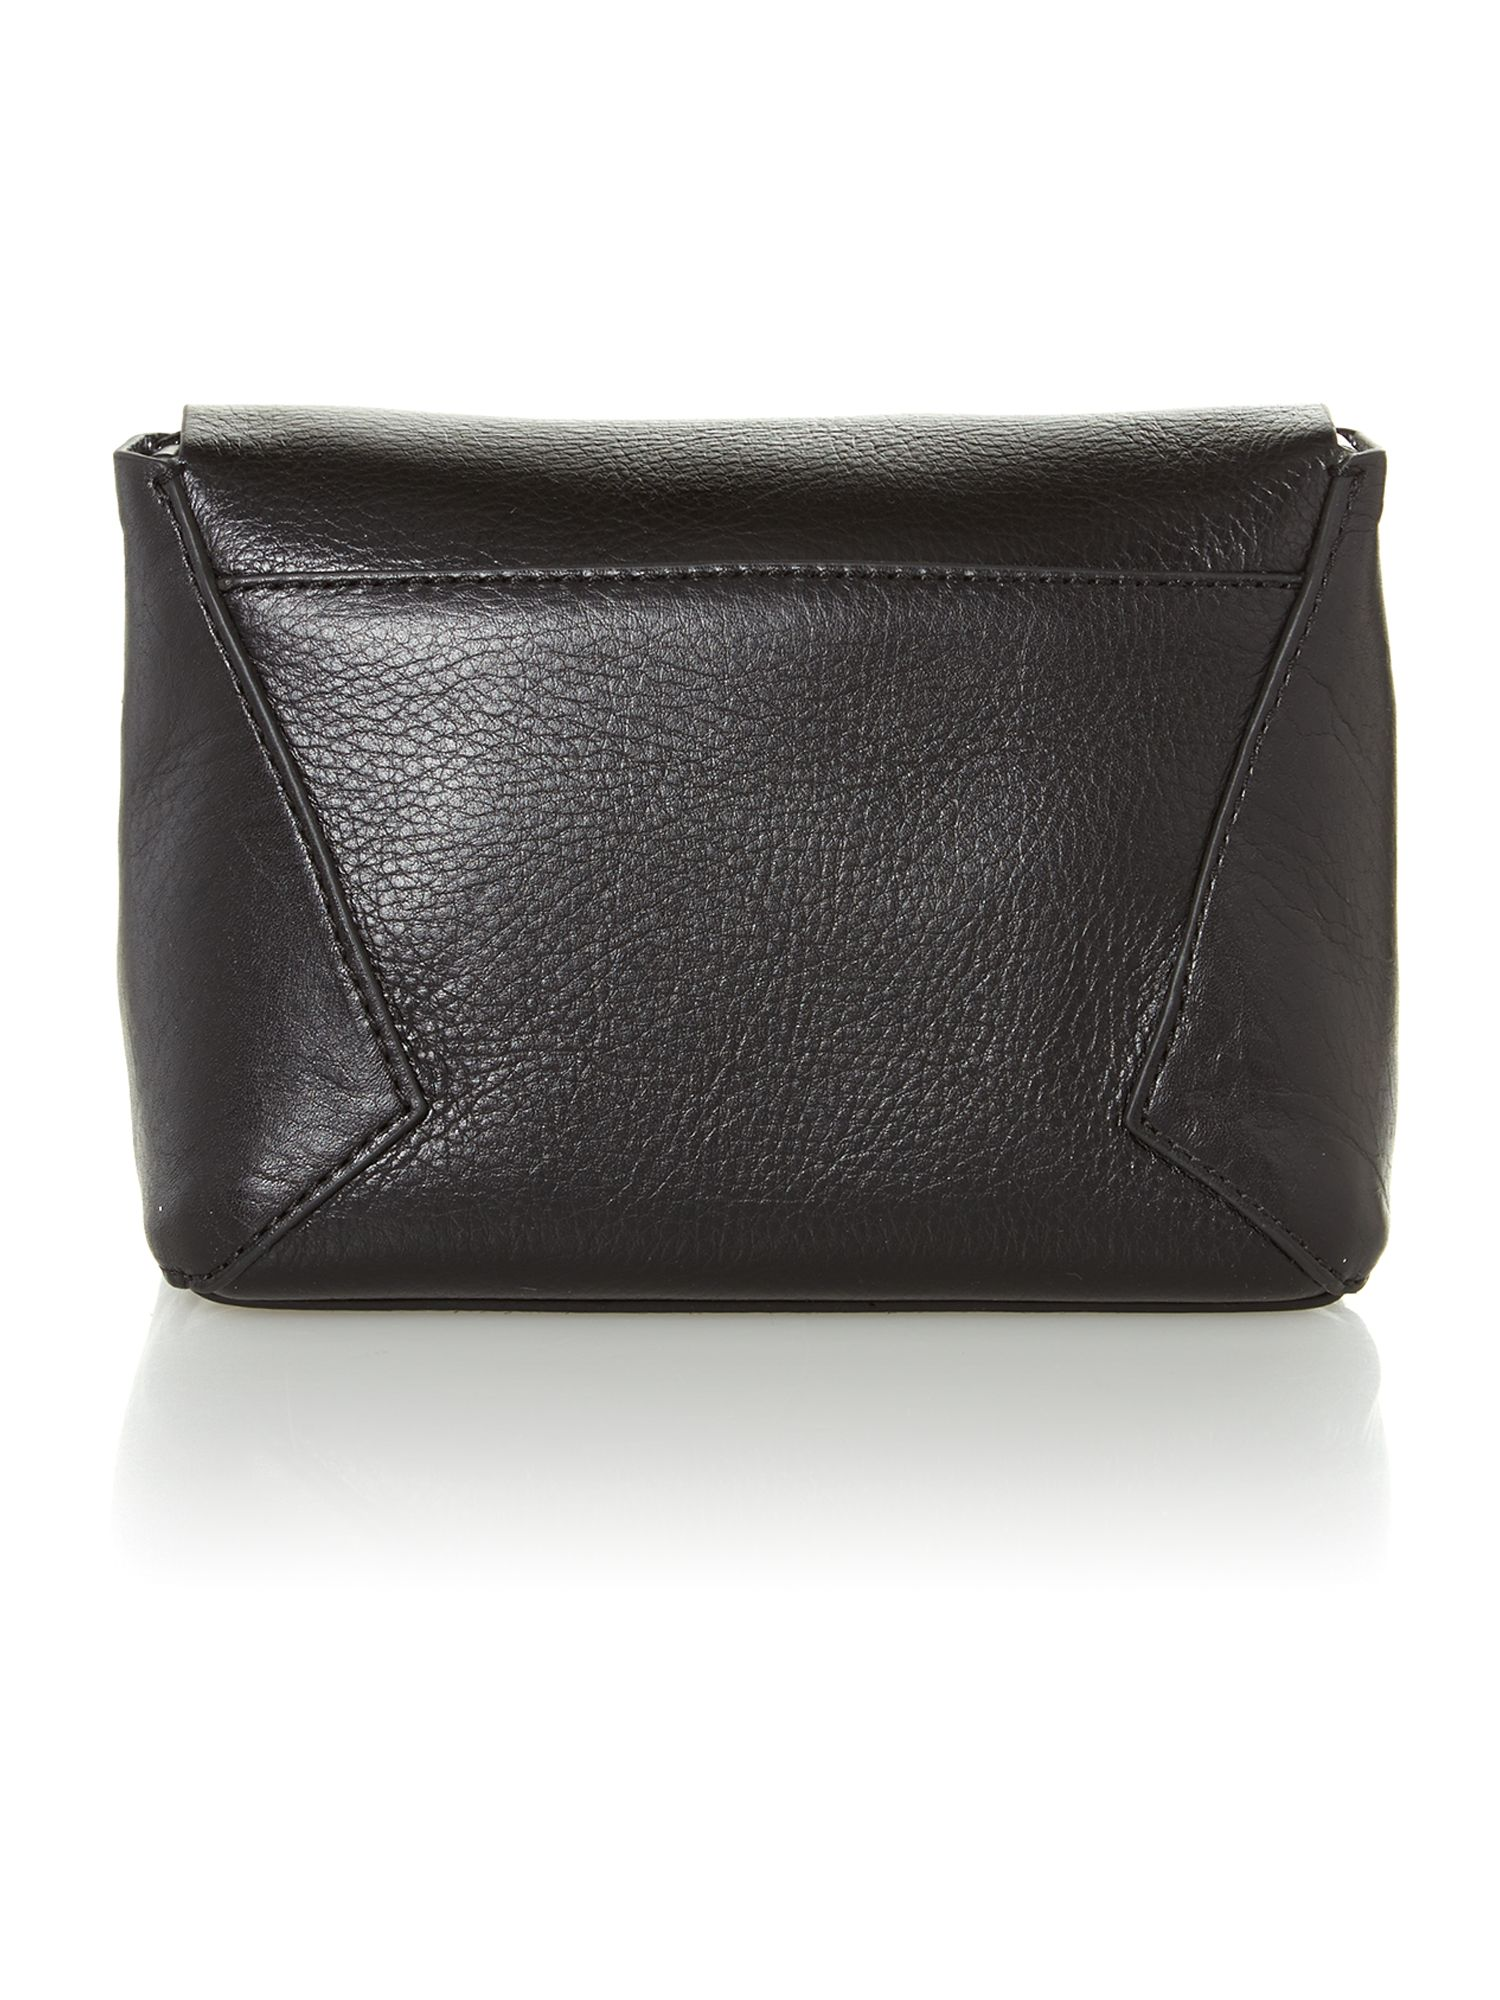 Olivia black small cross body bag